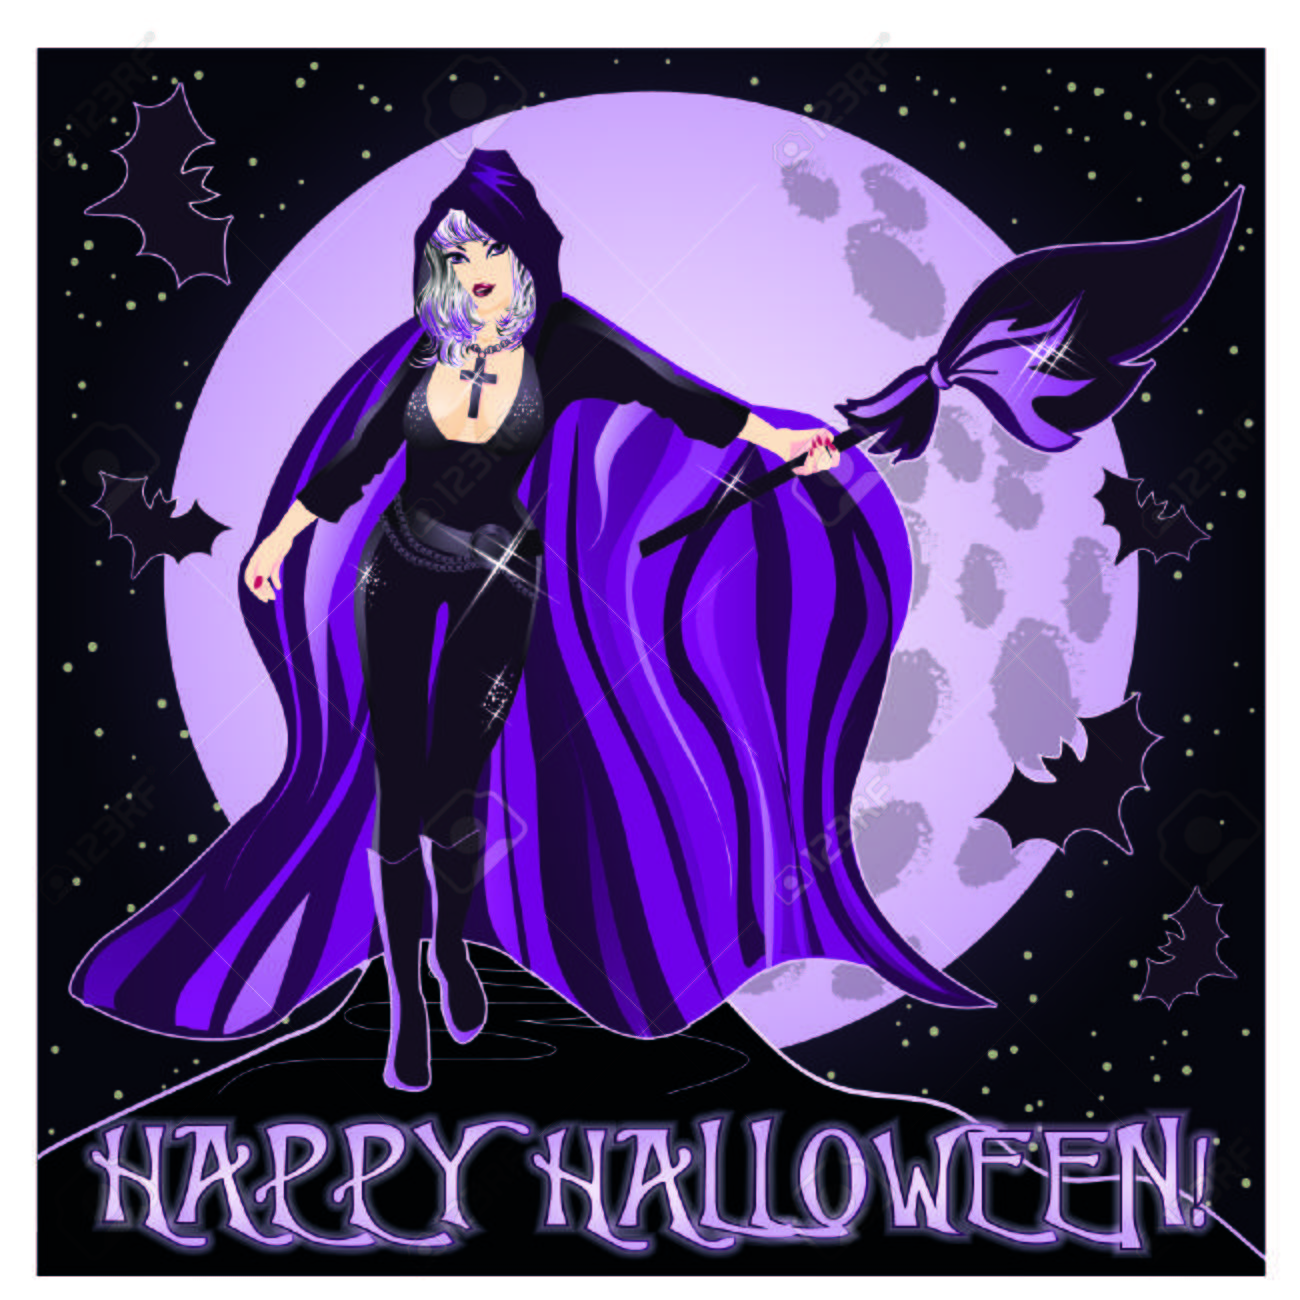 Happy Halloween Invitation Background With Young Sexy Witch Vector Illustration Stock